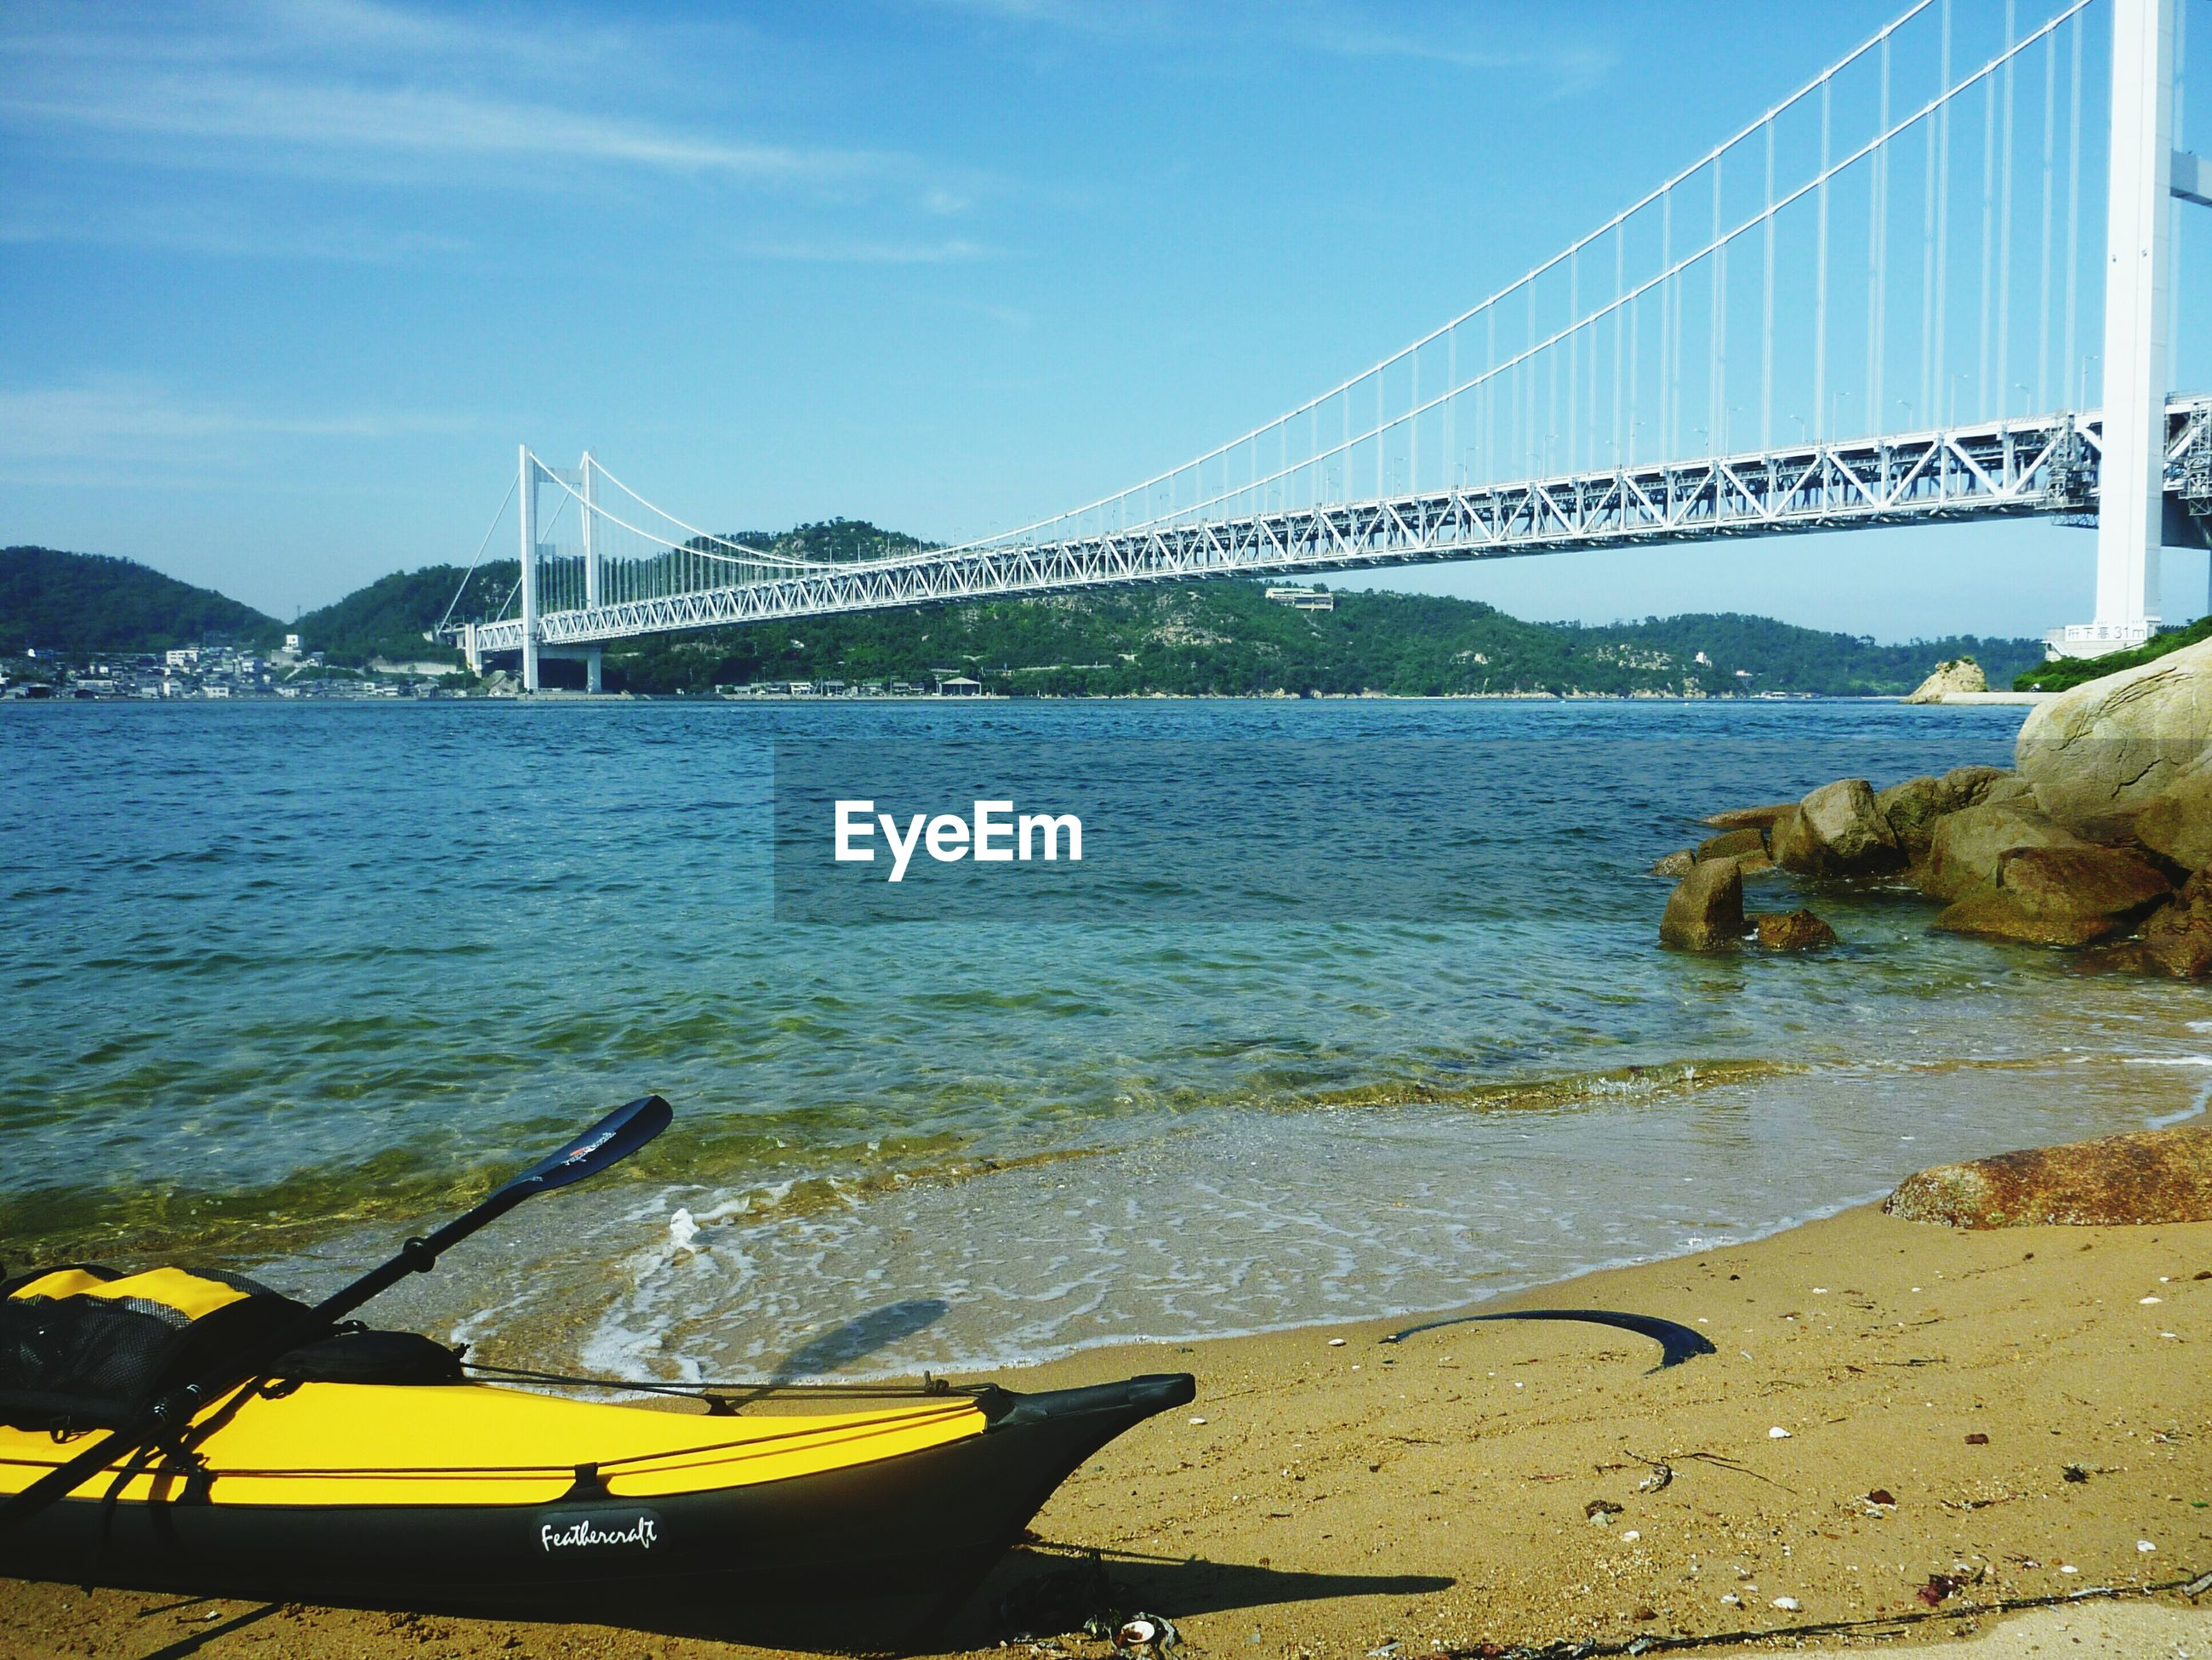 water, sea, transportation, sky, nautical vessel, beach, boat, tranquility, scenics, shore, blue, nature, bridge - man made structure, tranquil scene, mountain, beauty in nature, sunlight, mode of transport, river, connection